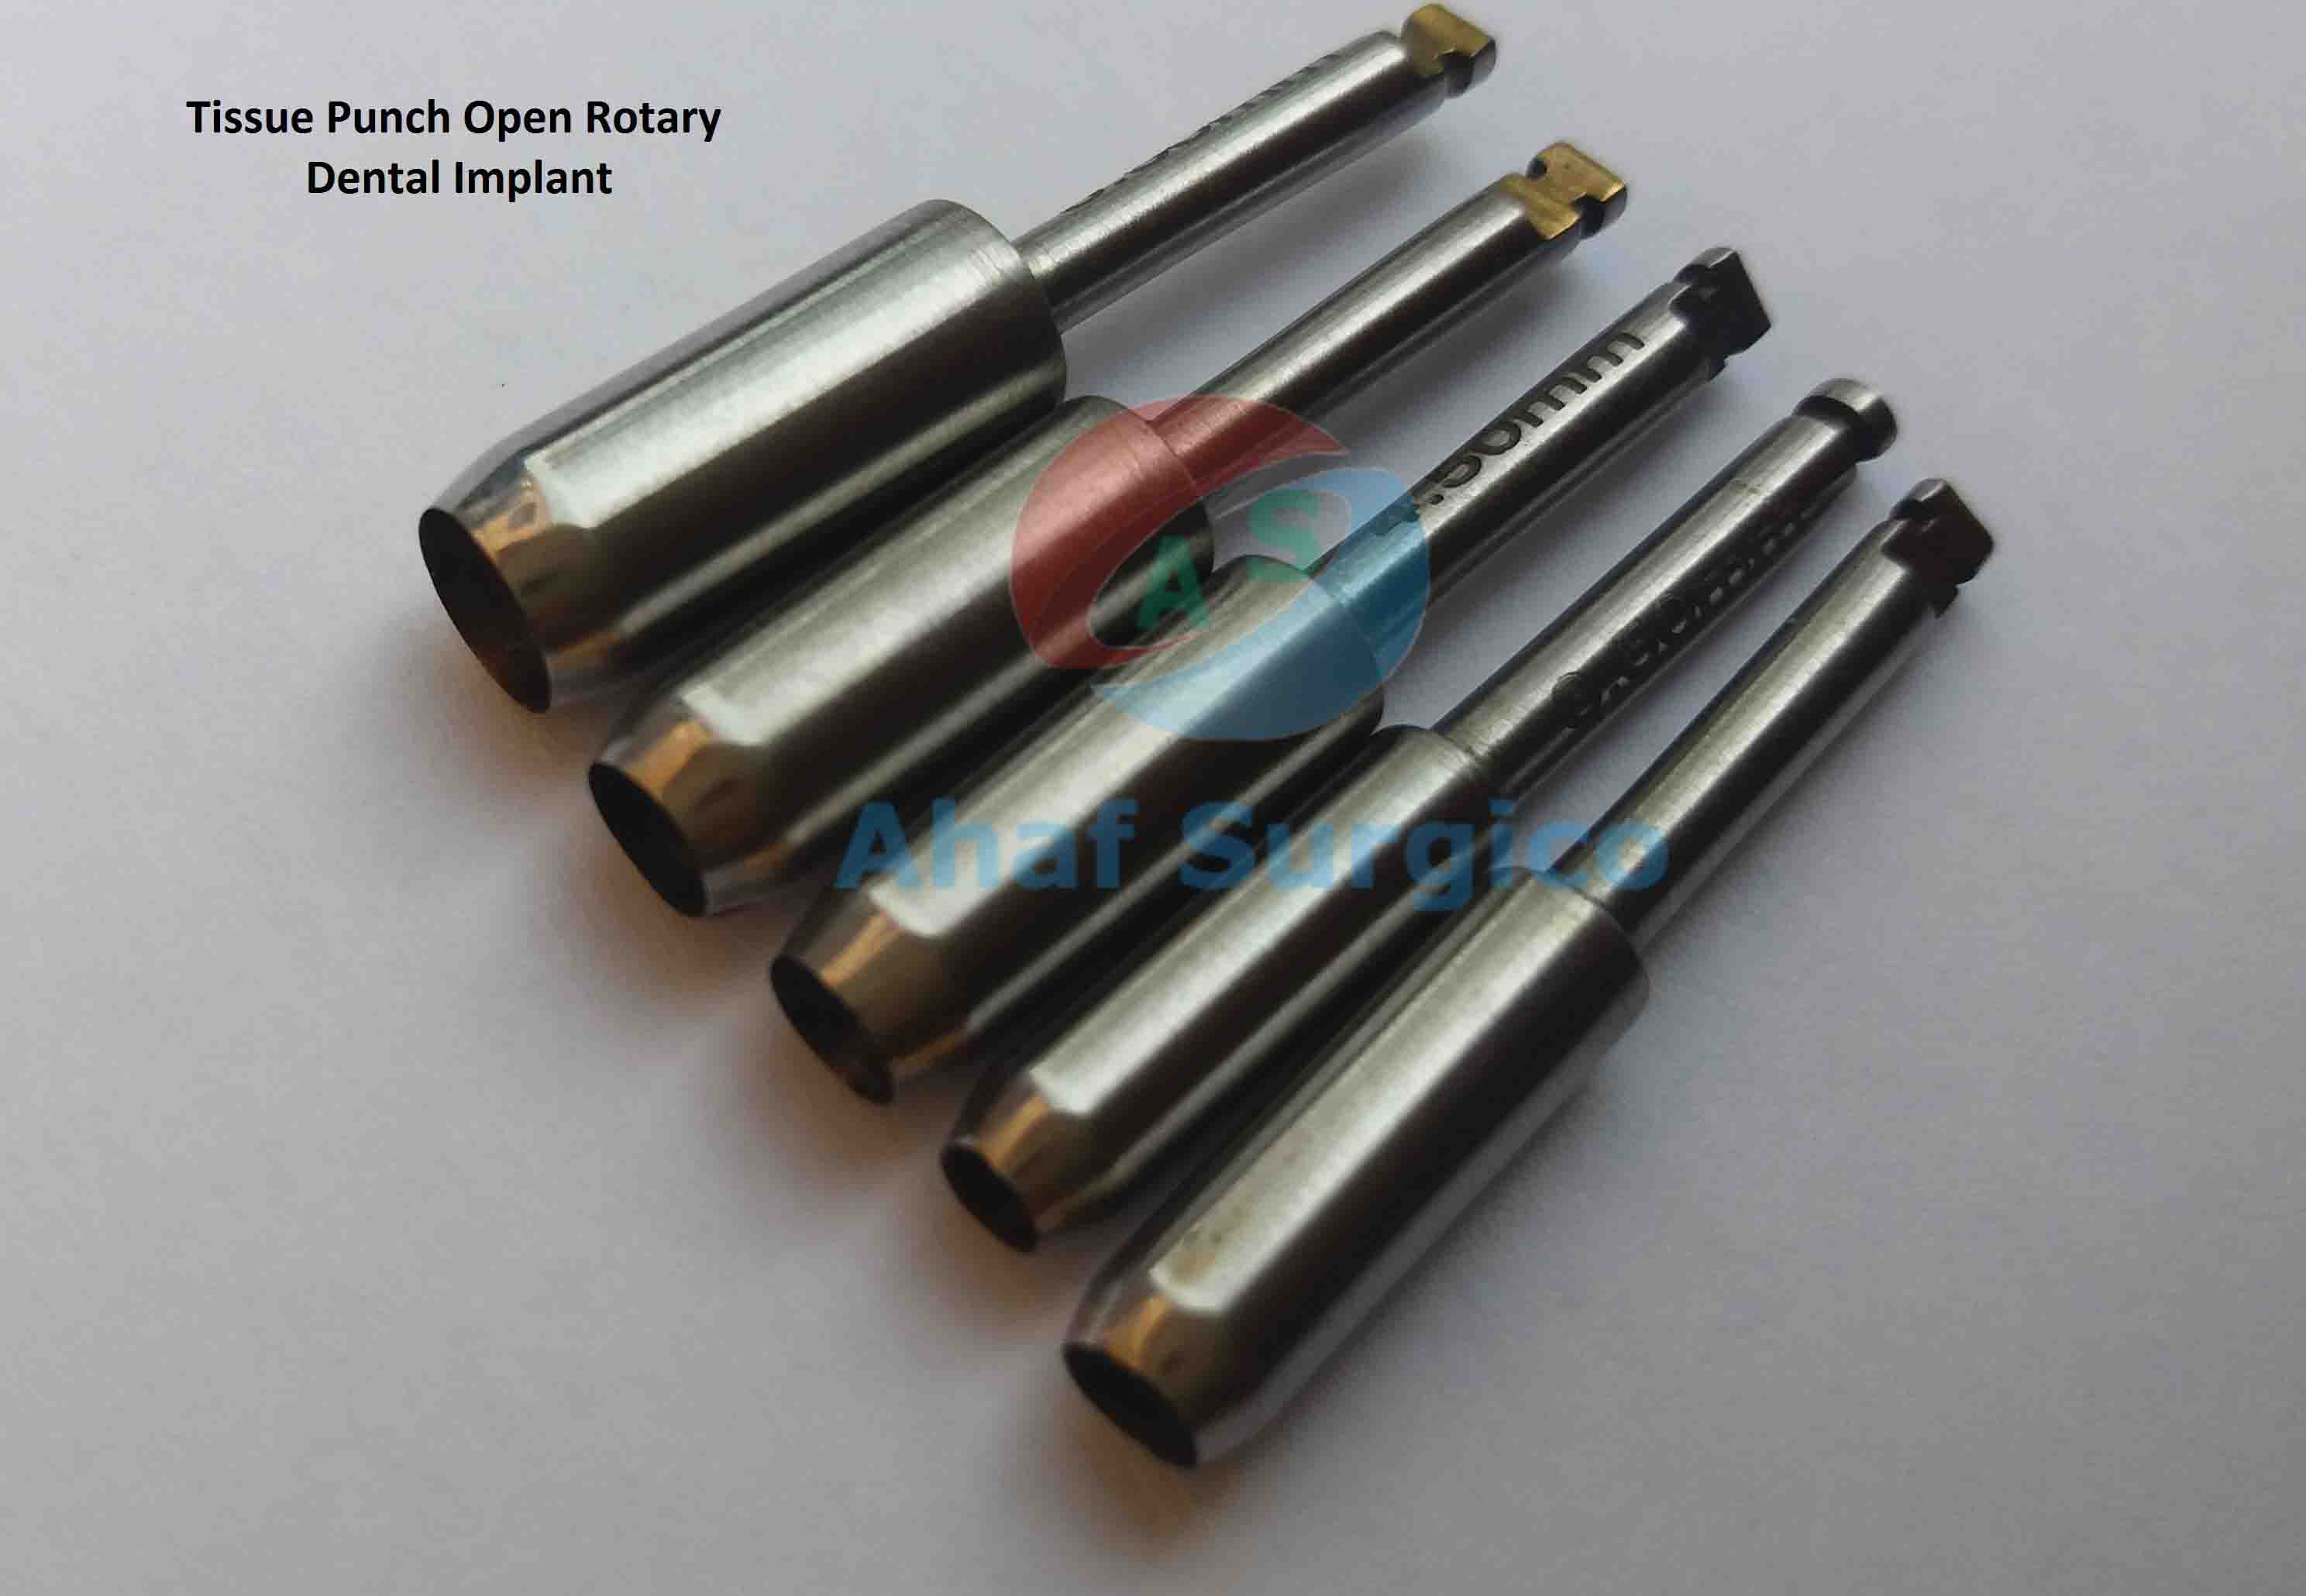 Tissue Punch Open Rotary